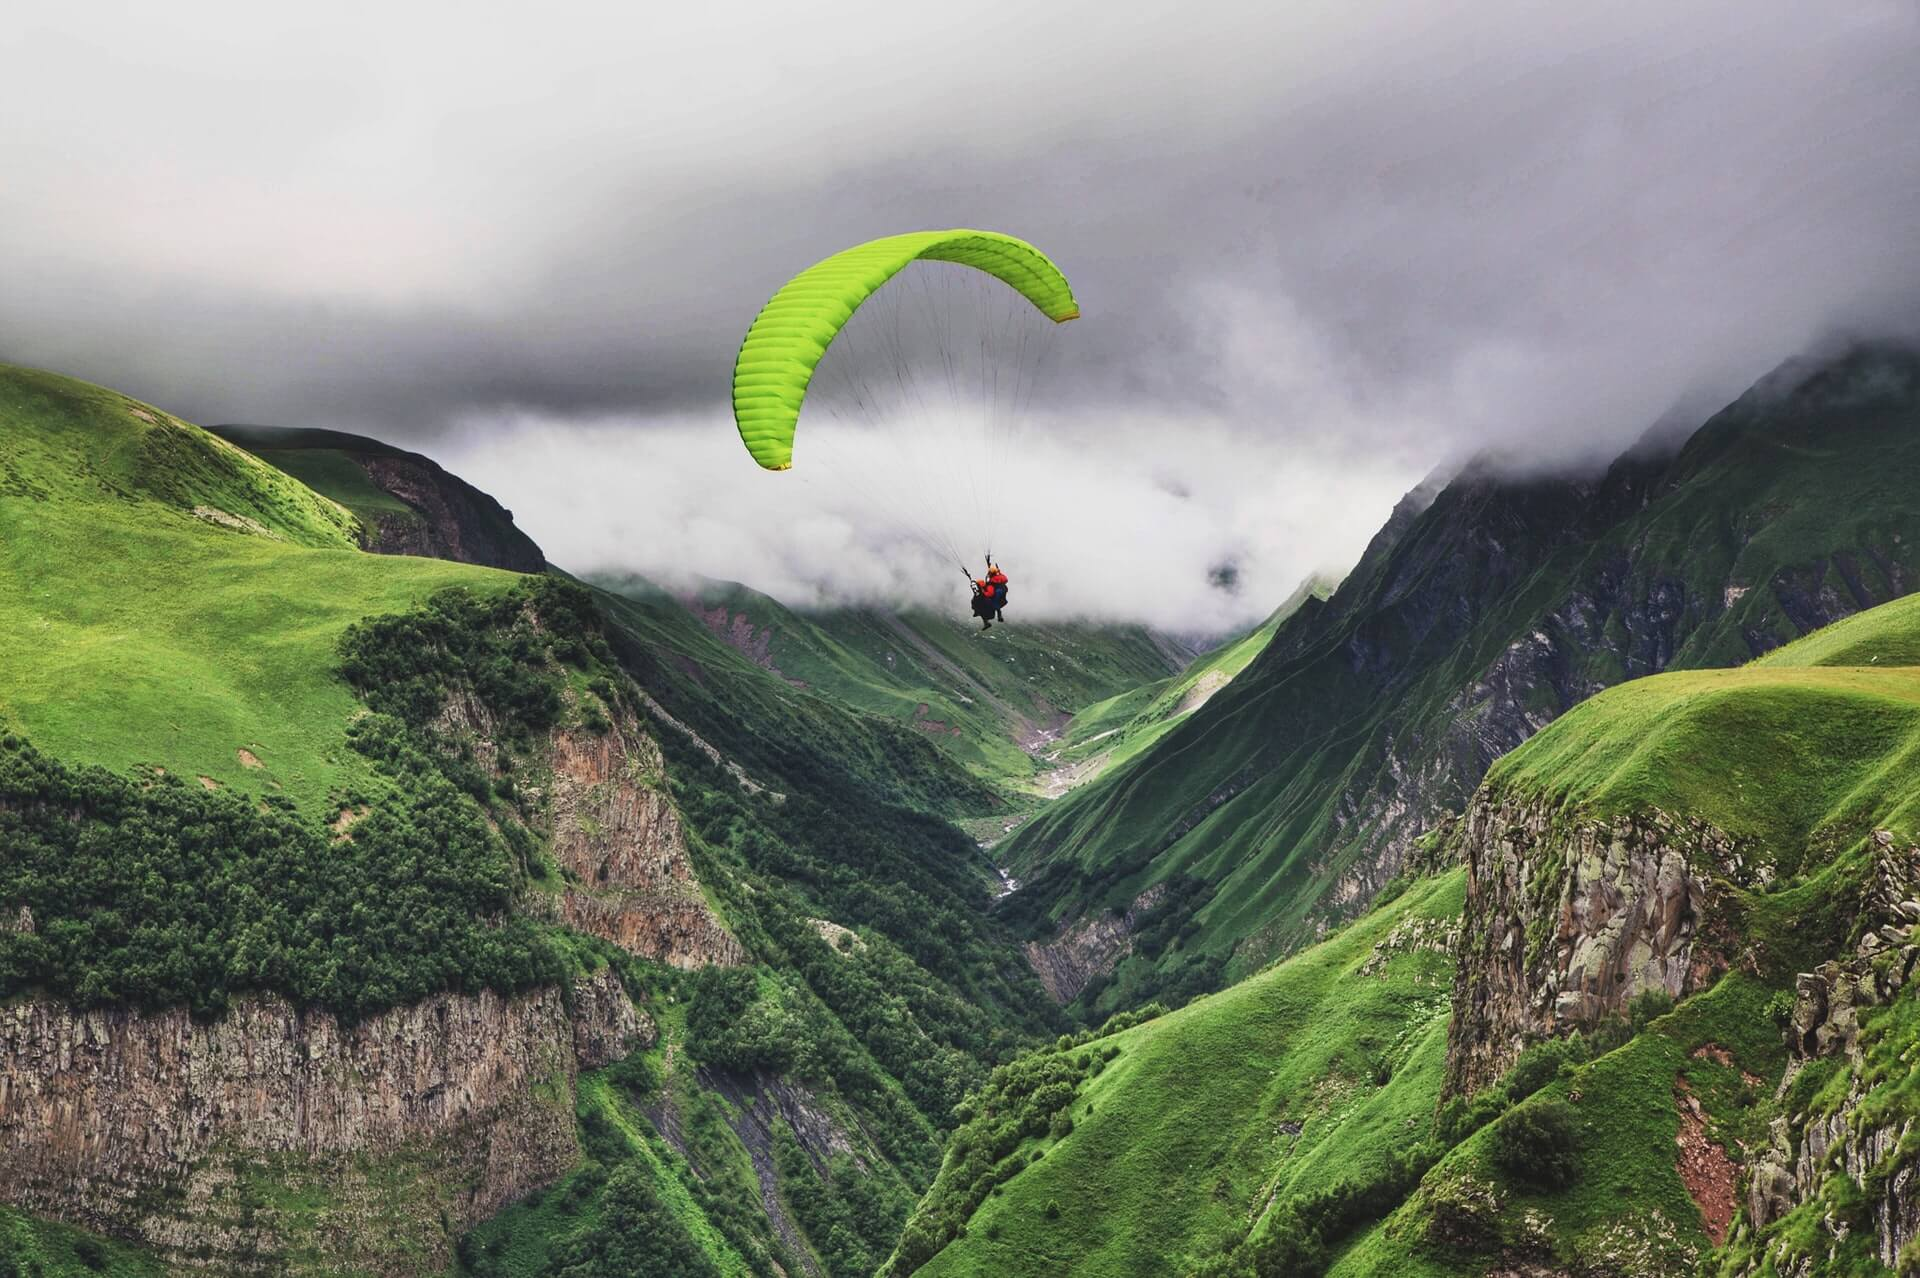 A tourist enjoying a paragliding activity somewhere green in Oman